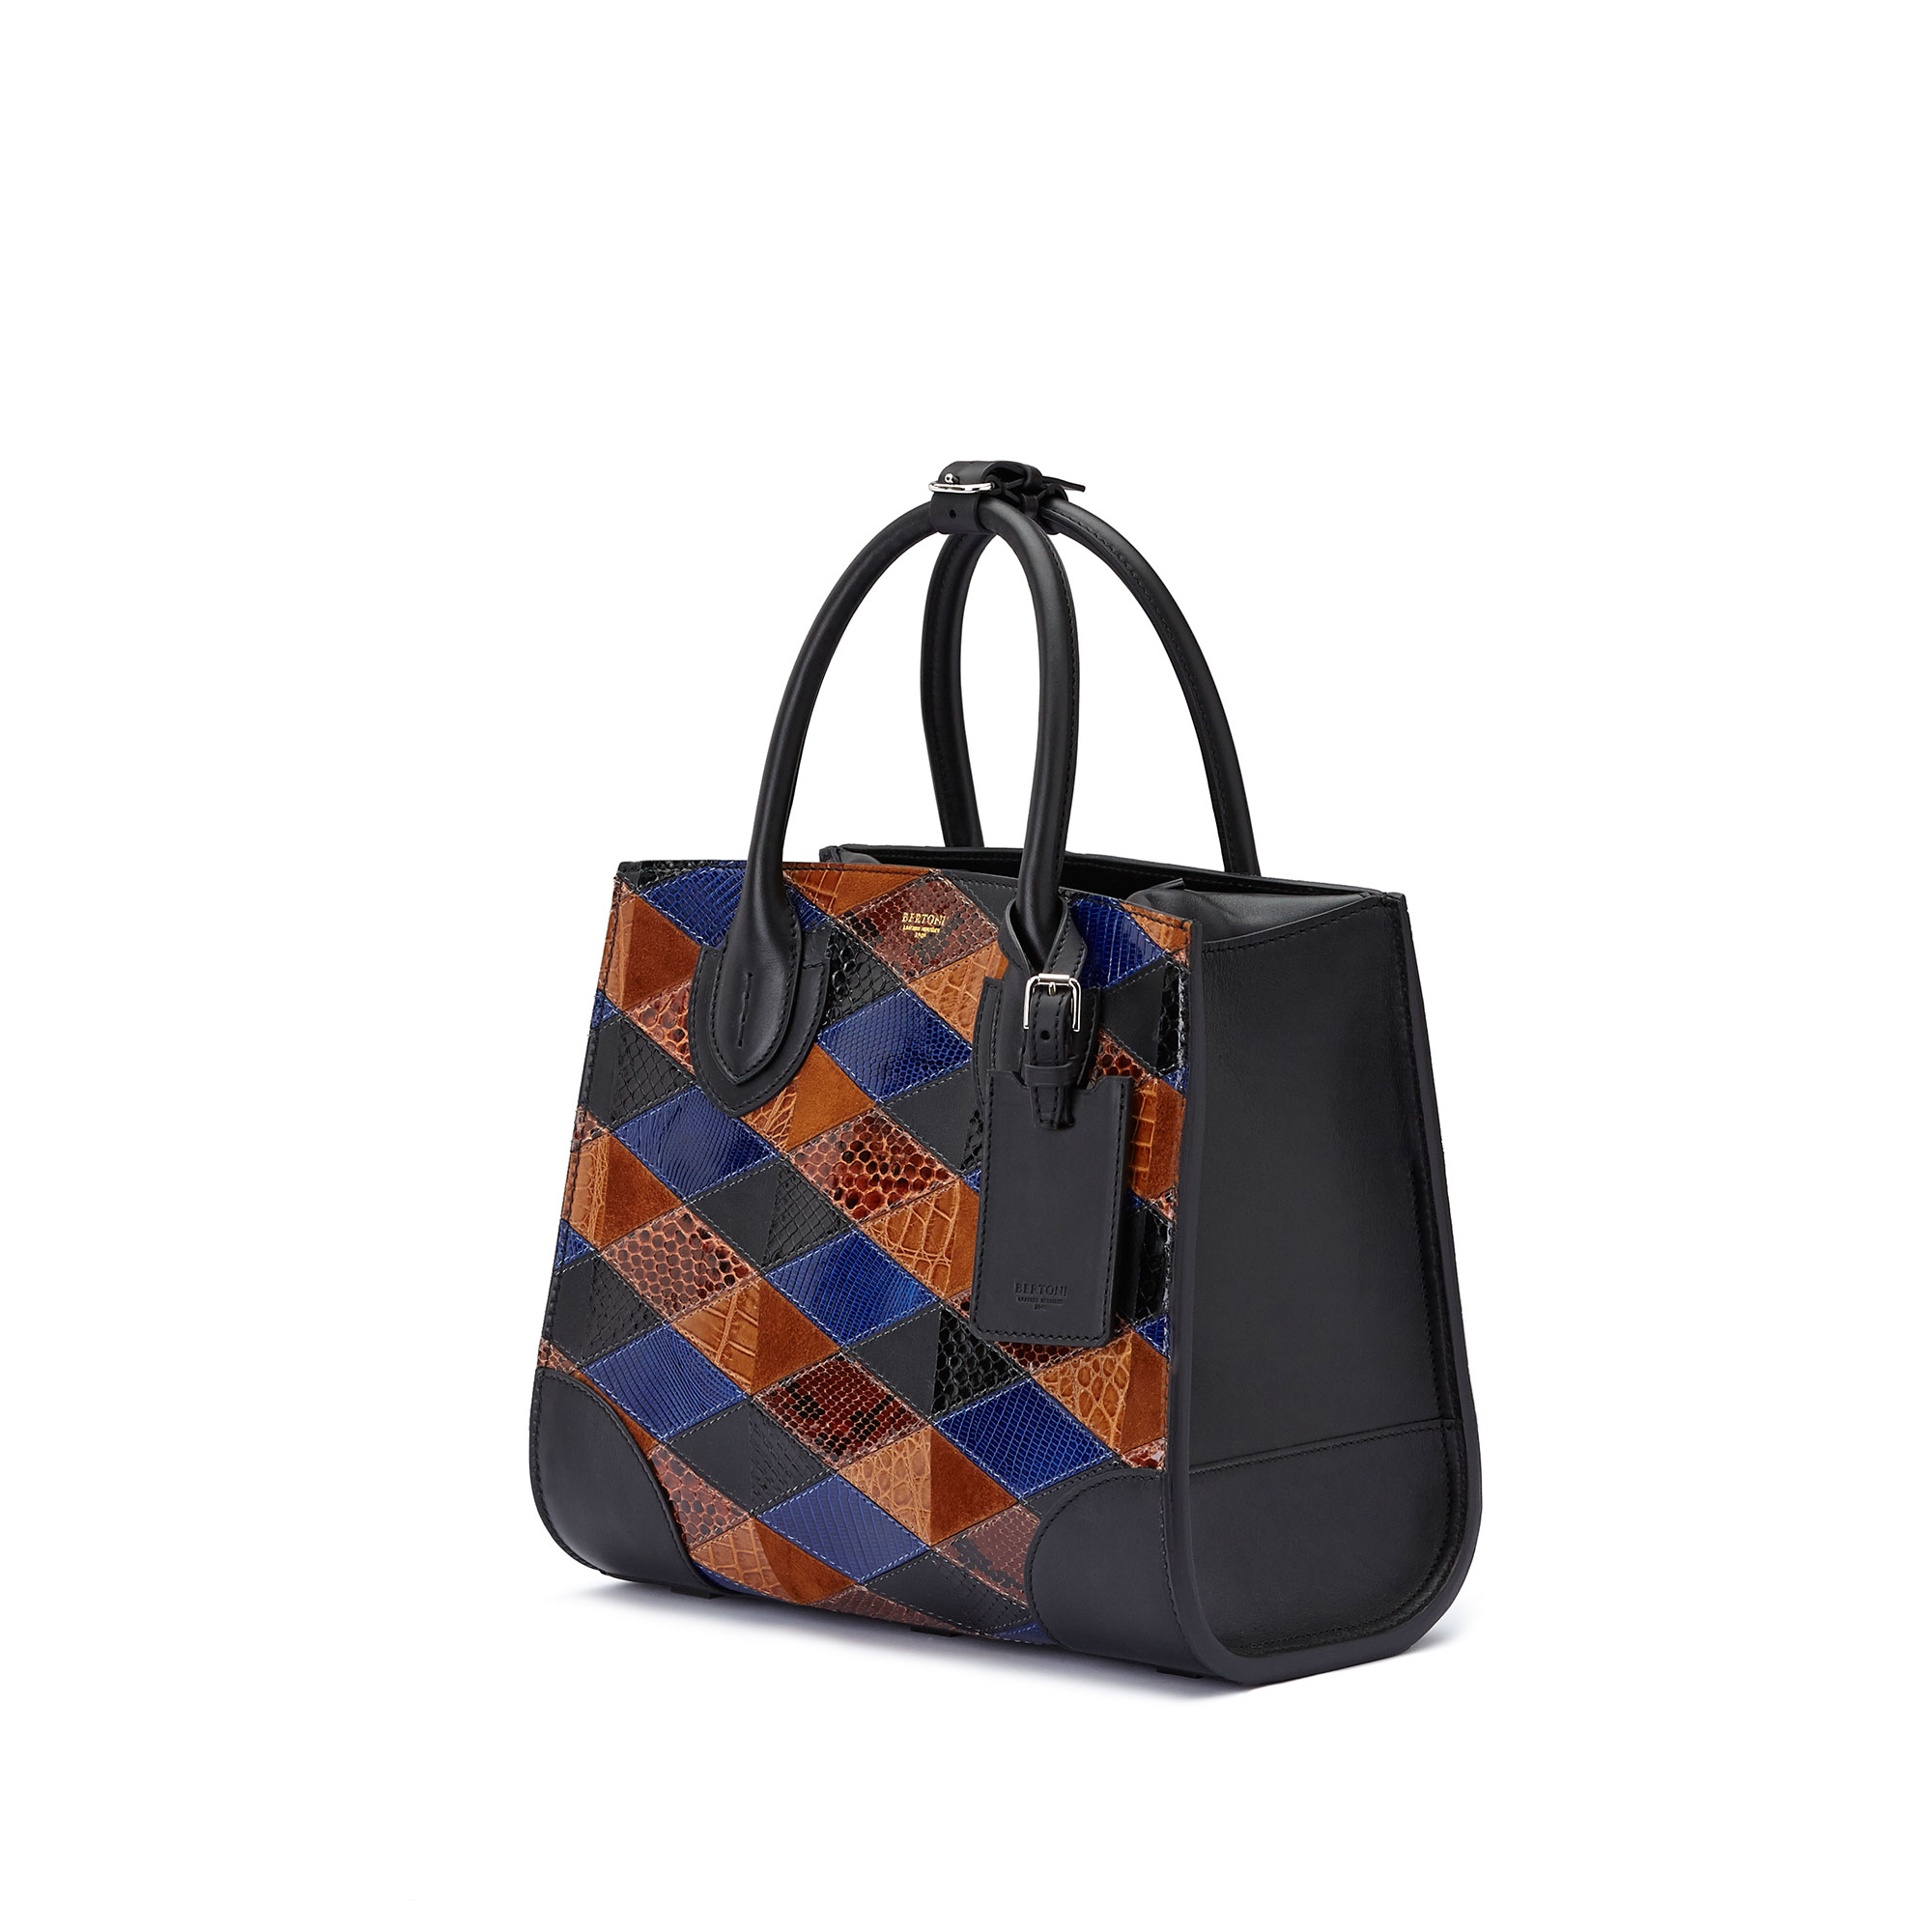 The navy, brown and black french calf, alligator, lizard and python Darcy medium bag by Bertoni 1949 03